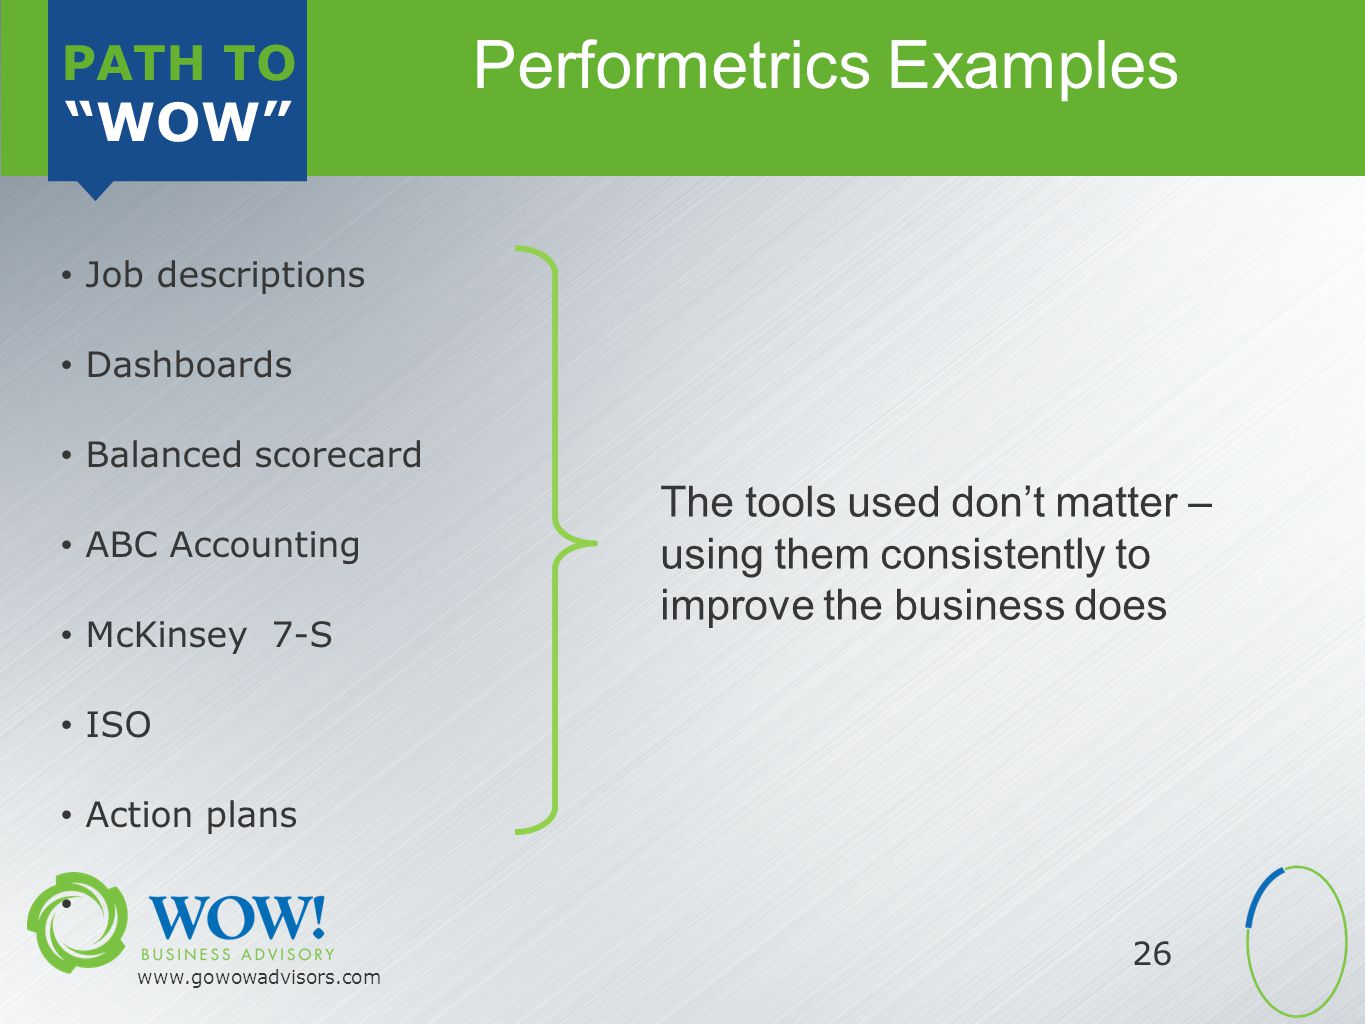 PATH TO WOW www.gowowadvisors.com 26 Job descriptions Dashboards Balanced scorecard ABC Accounting McKinsey 7-S ISO Action plans Performetrics Examples The tools used don't matter – using them consistently to improve the business does